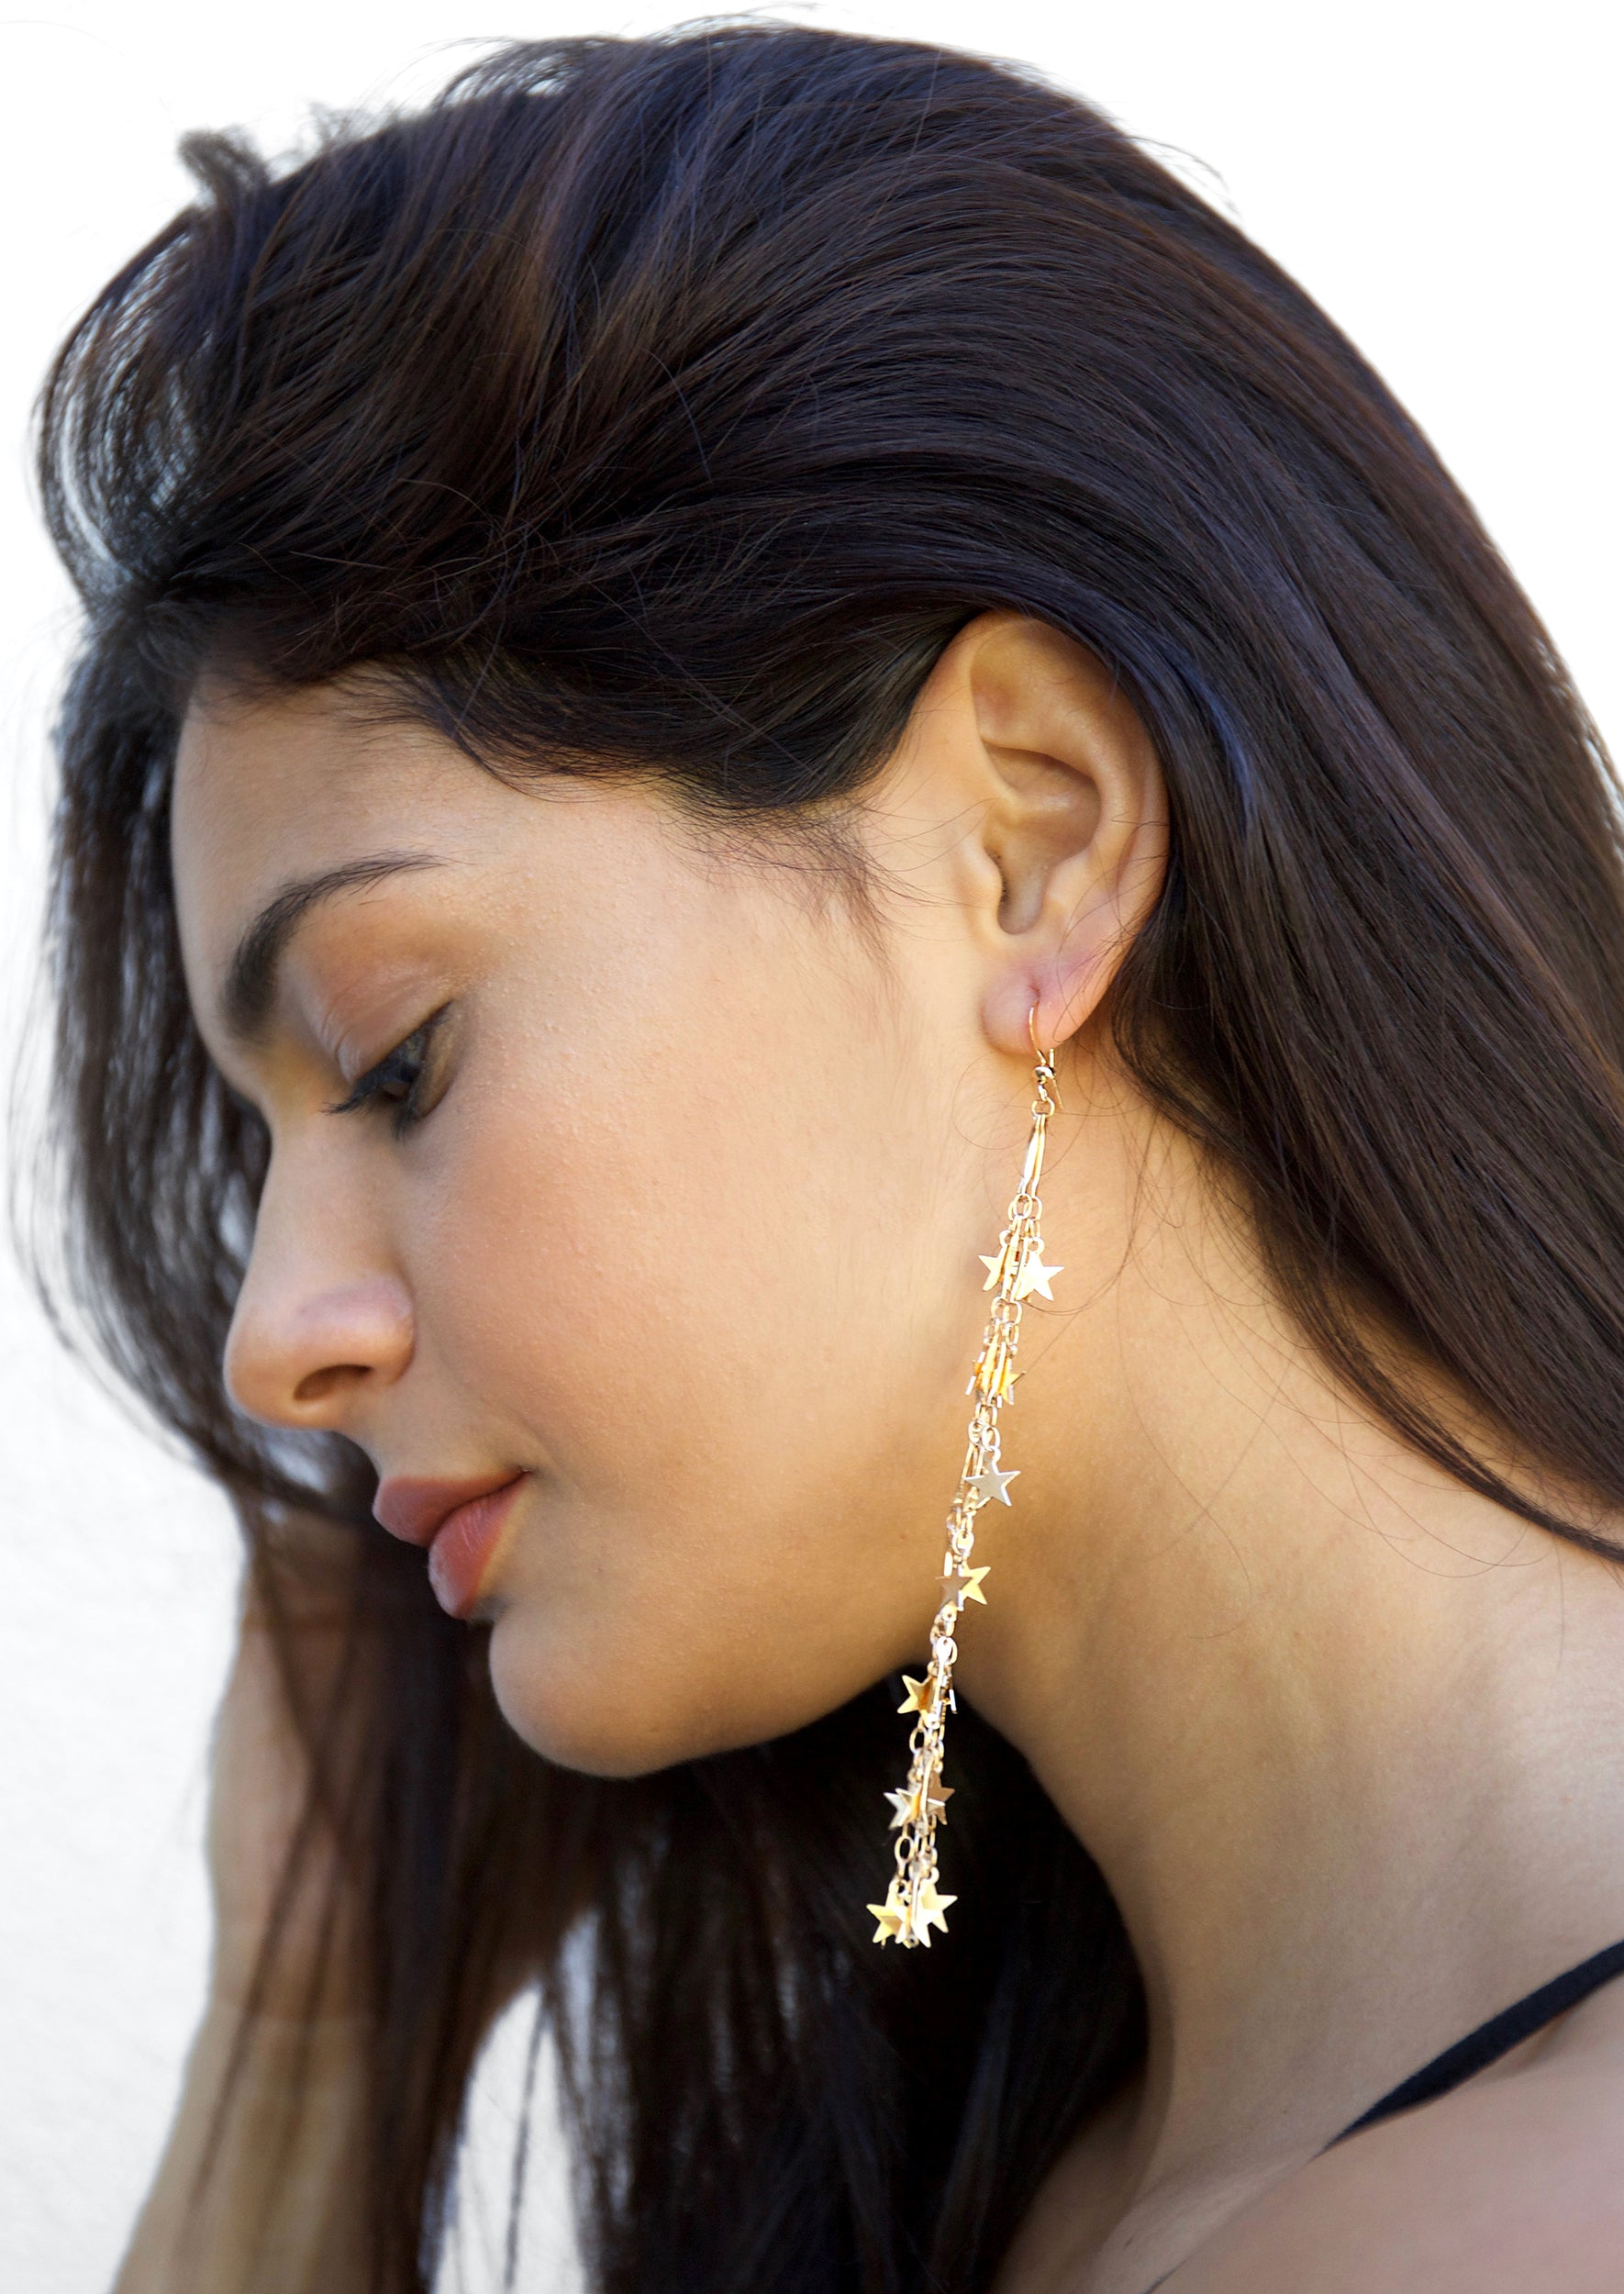 Starstruck Earrings - Jules Smith - 14K Gold Plated - Boho Jewelry